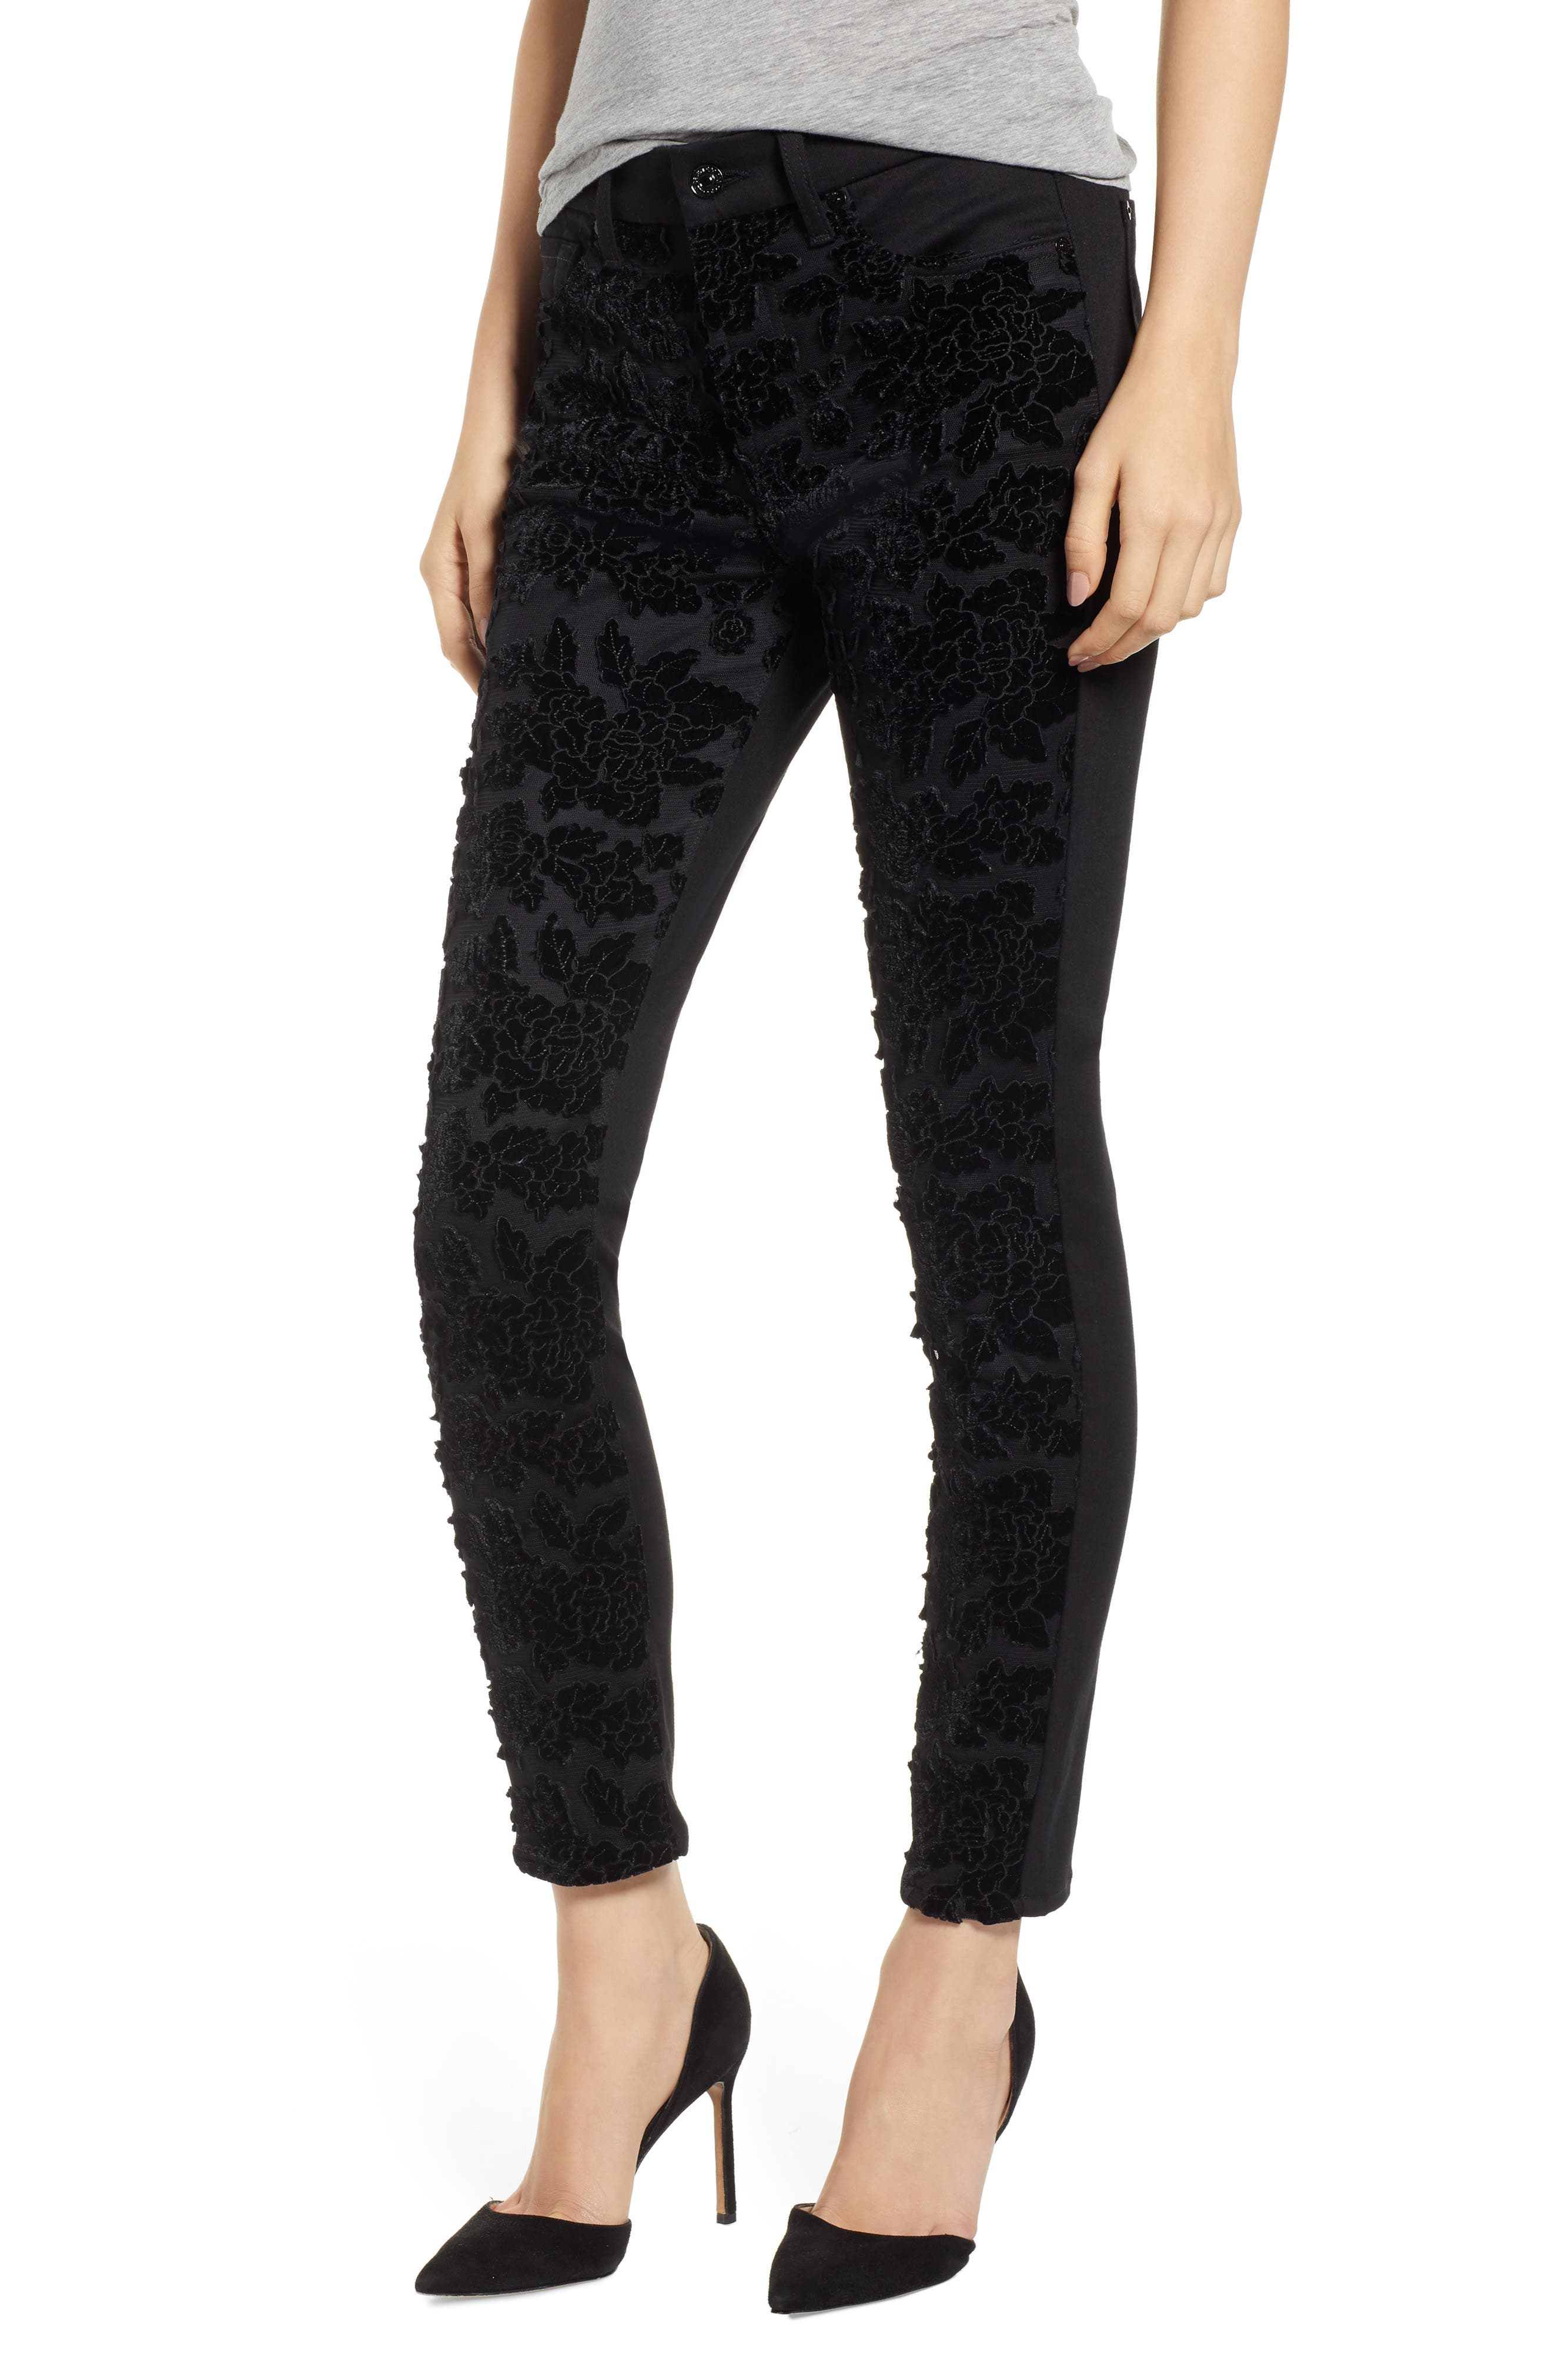 b(air) The Ankle Skinny Jeans,                             Main thumbnail 1, color,                             004